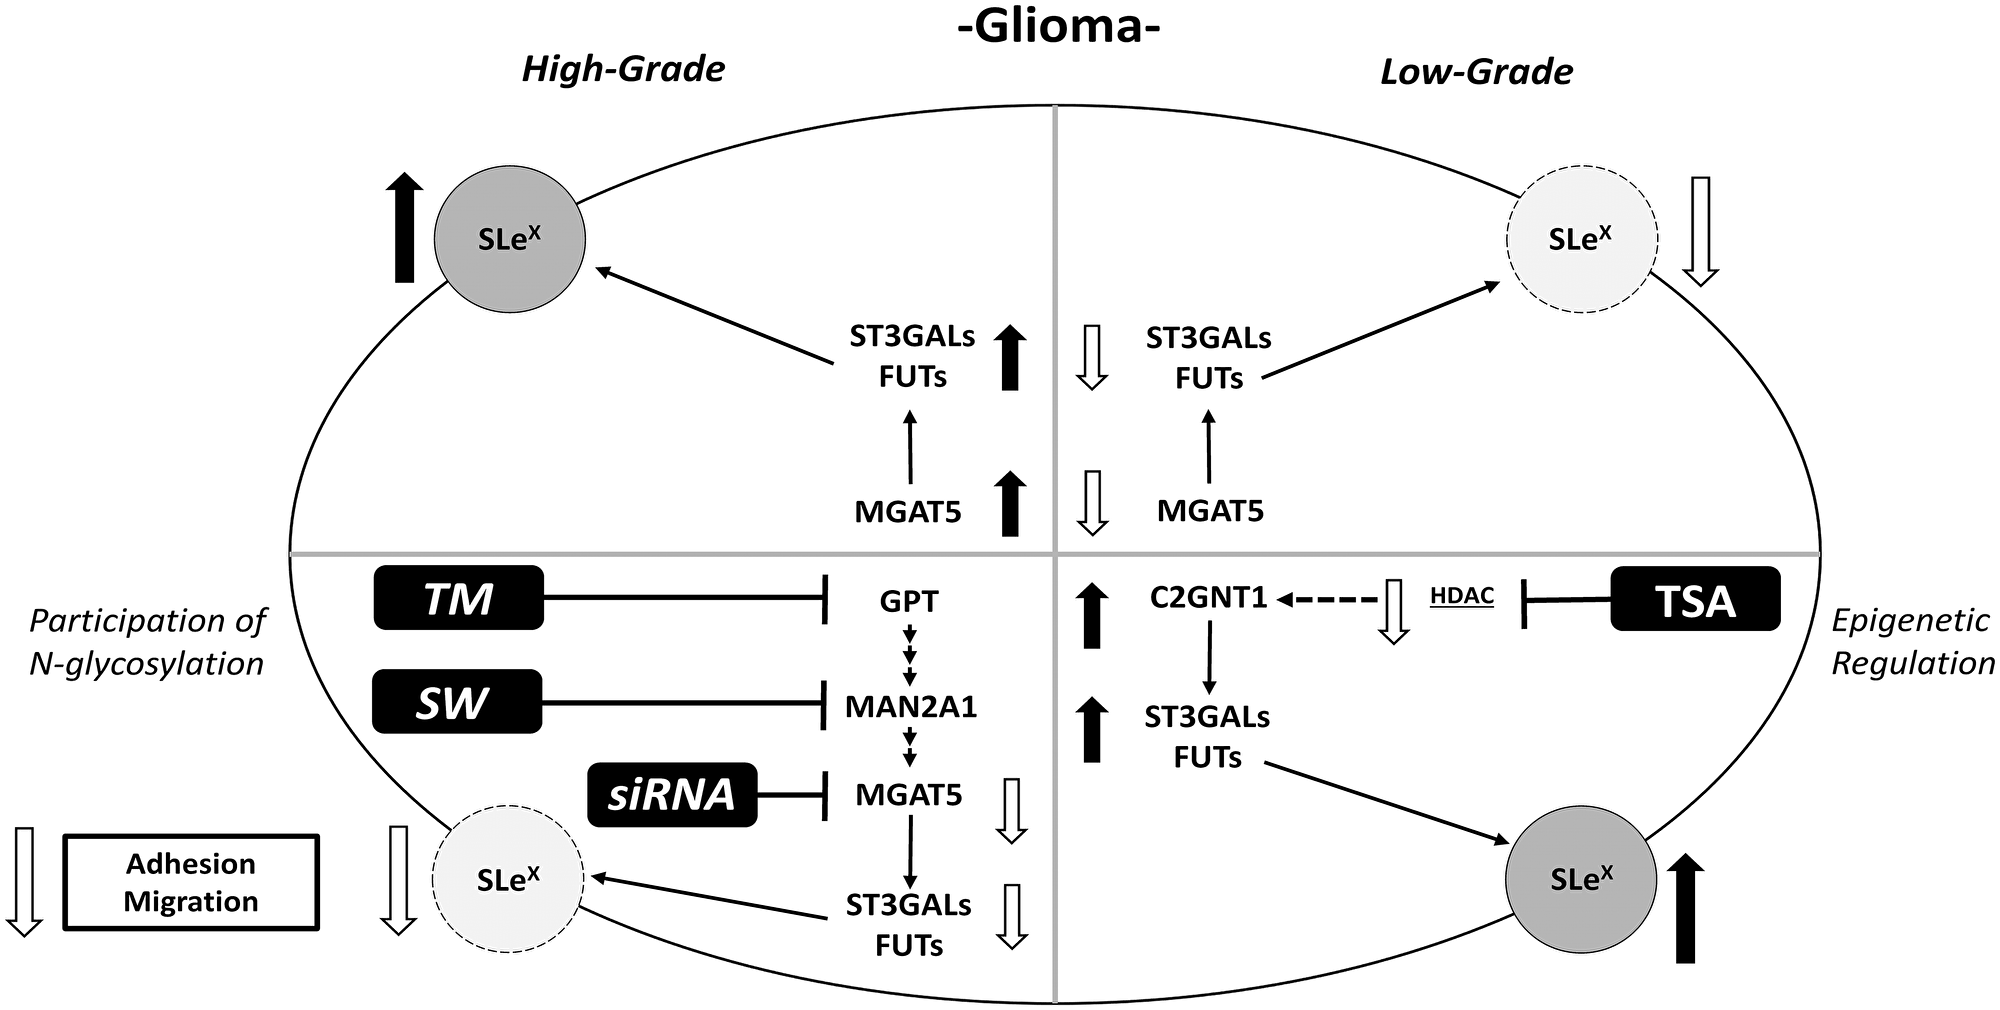 Schematic illustration of results obtained for Lewis glycans and expression of glycosyltransferases in treated and untreated high- and low-grade glioma cells.